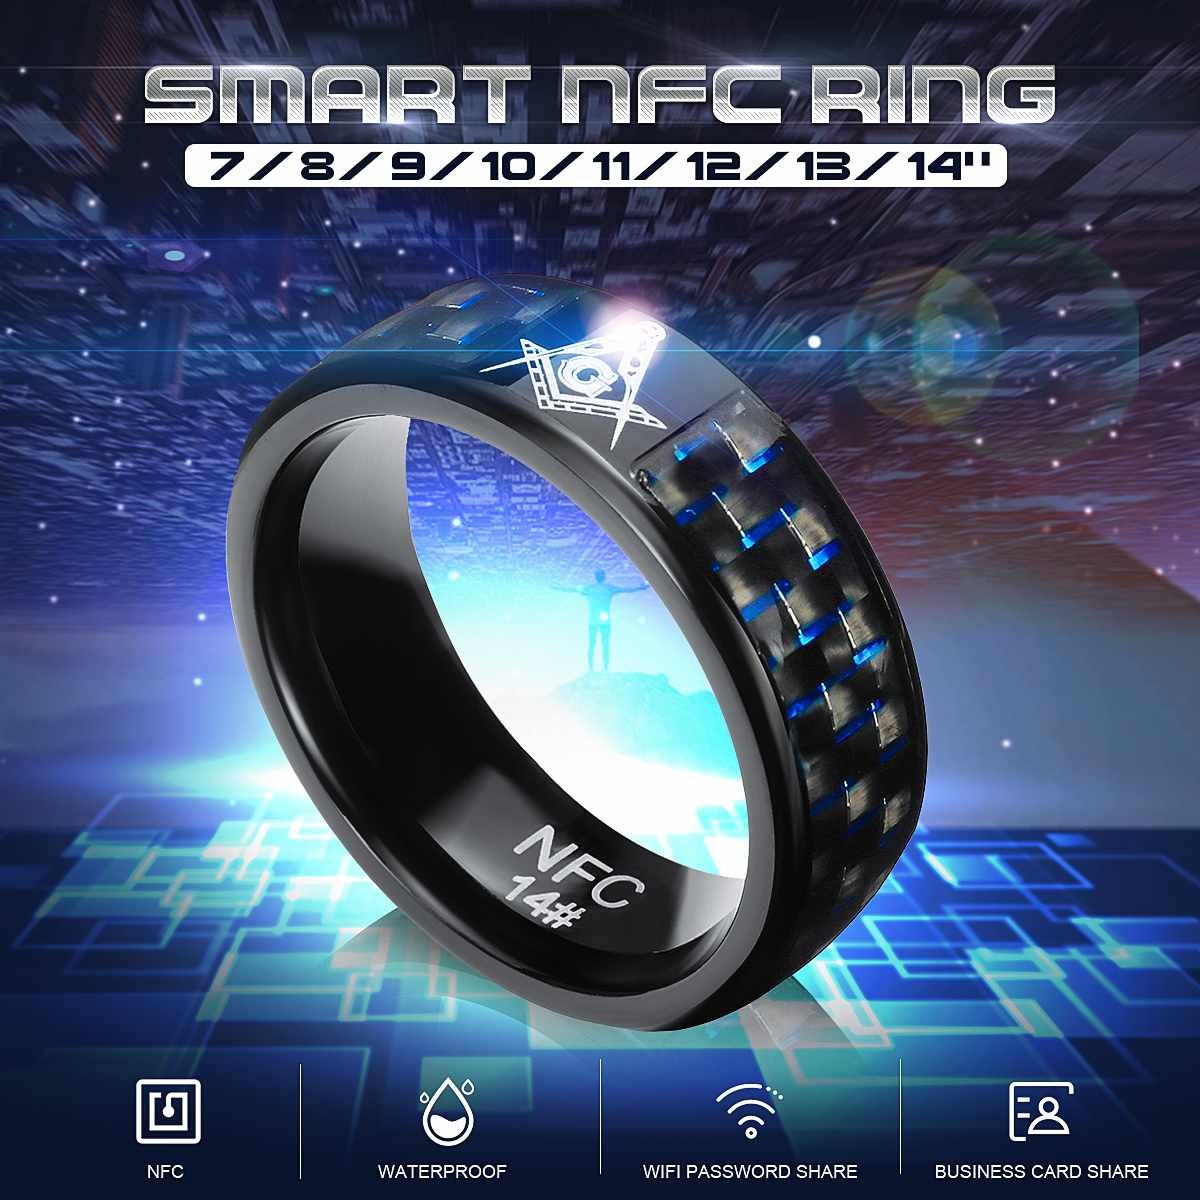 2020 New 7/8/9/10/11/12/13/14 Fashion Elegant Jewelry Rings Wear Magic NFC Smart Ring For Ios Android Windows Mobile Phone